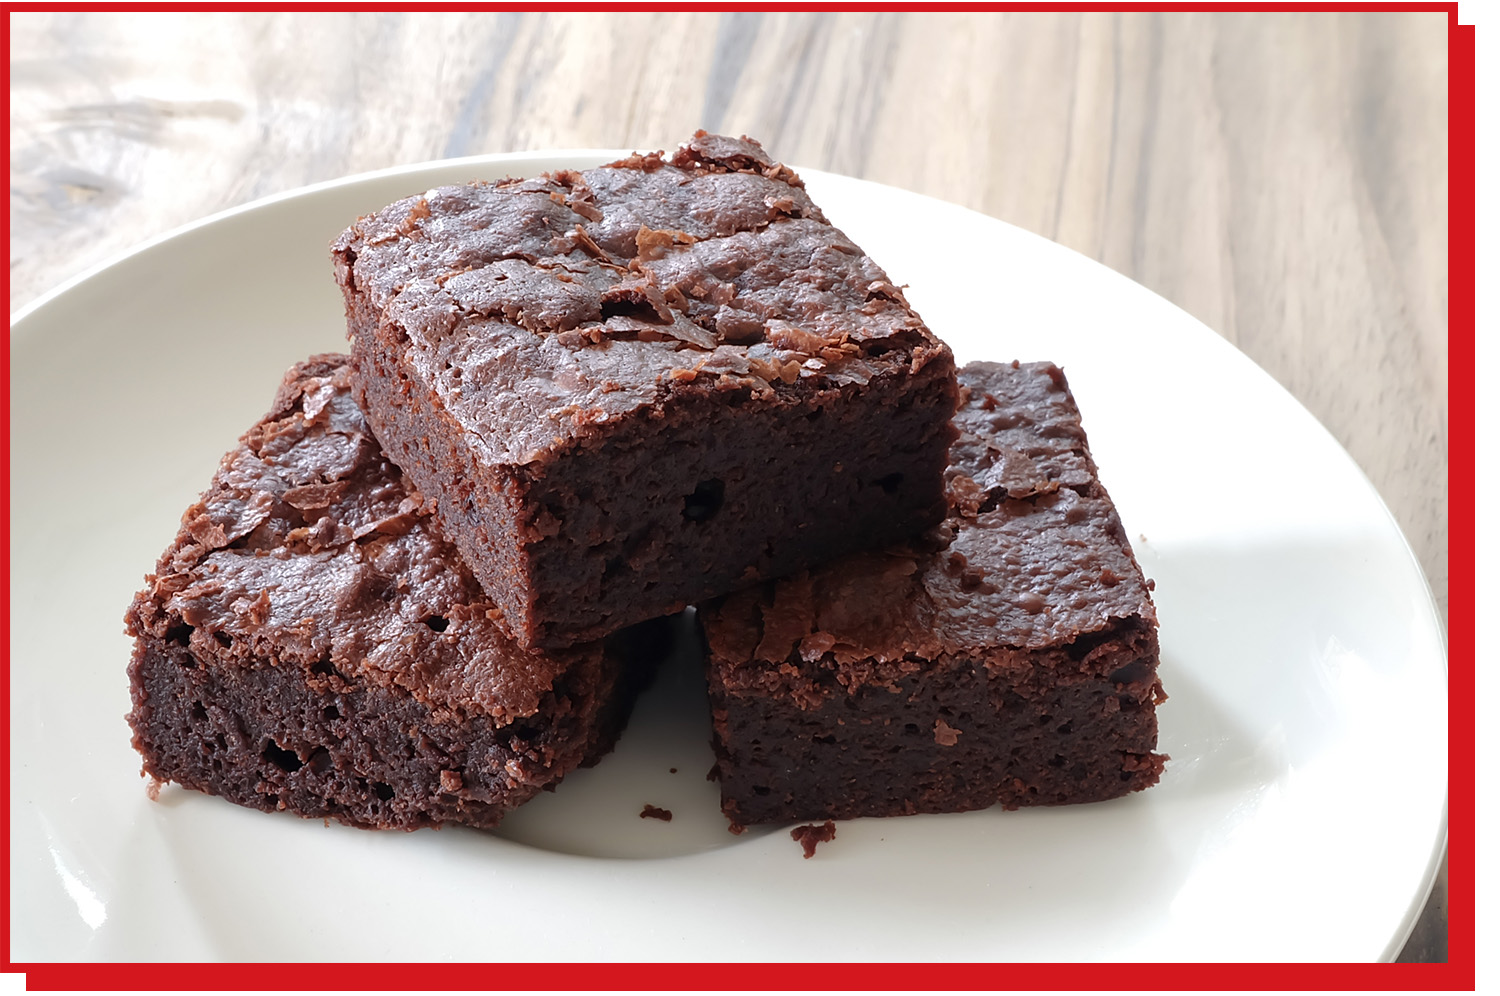 Three brownies on a plate.